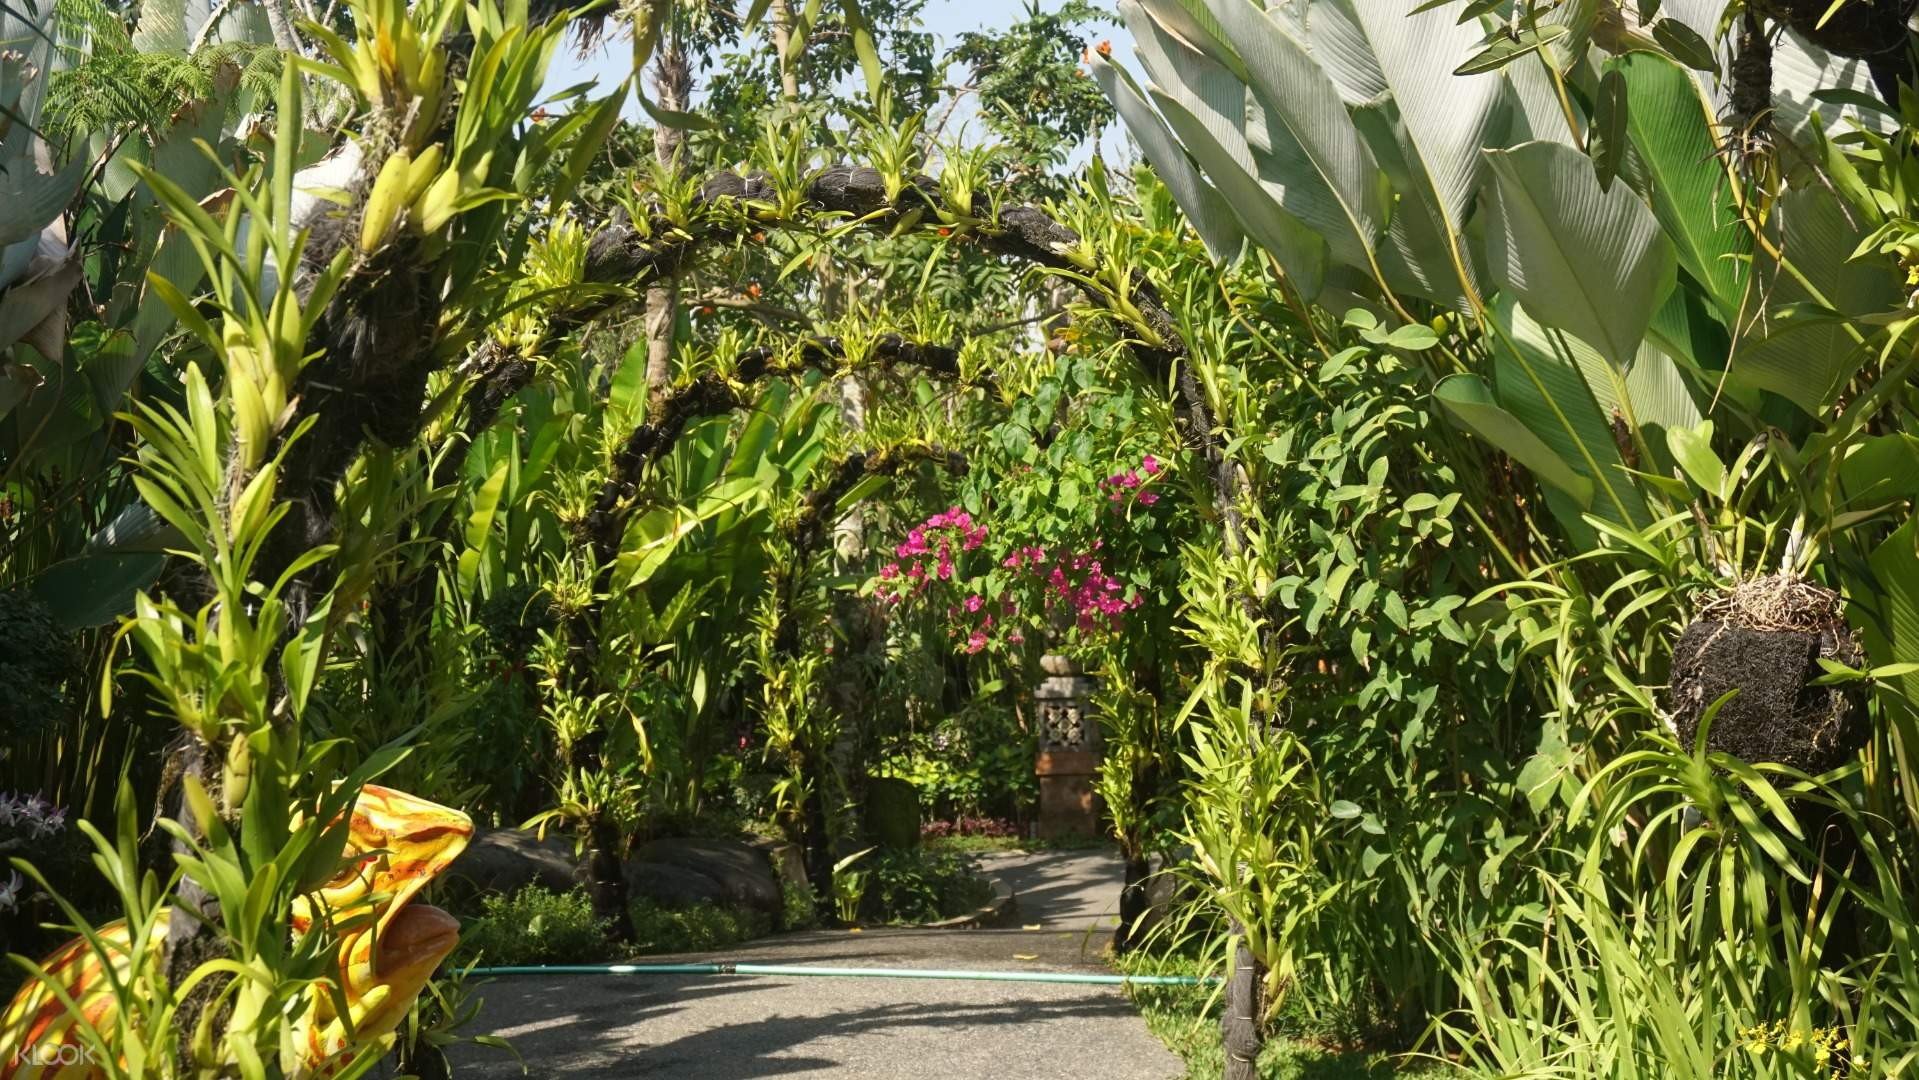 Kemenuh Orchid Garden And Dragonfly And Bonsai Park Tickets In Bali